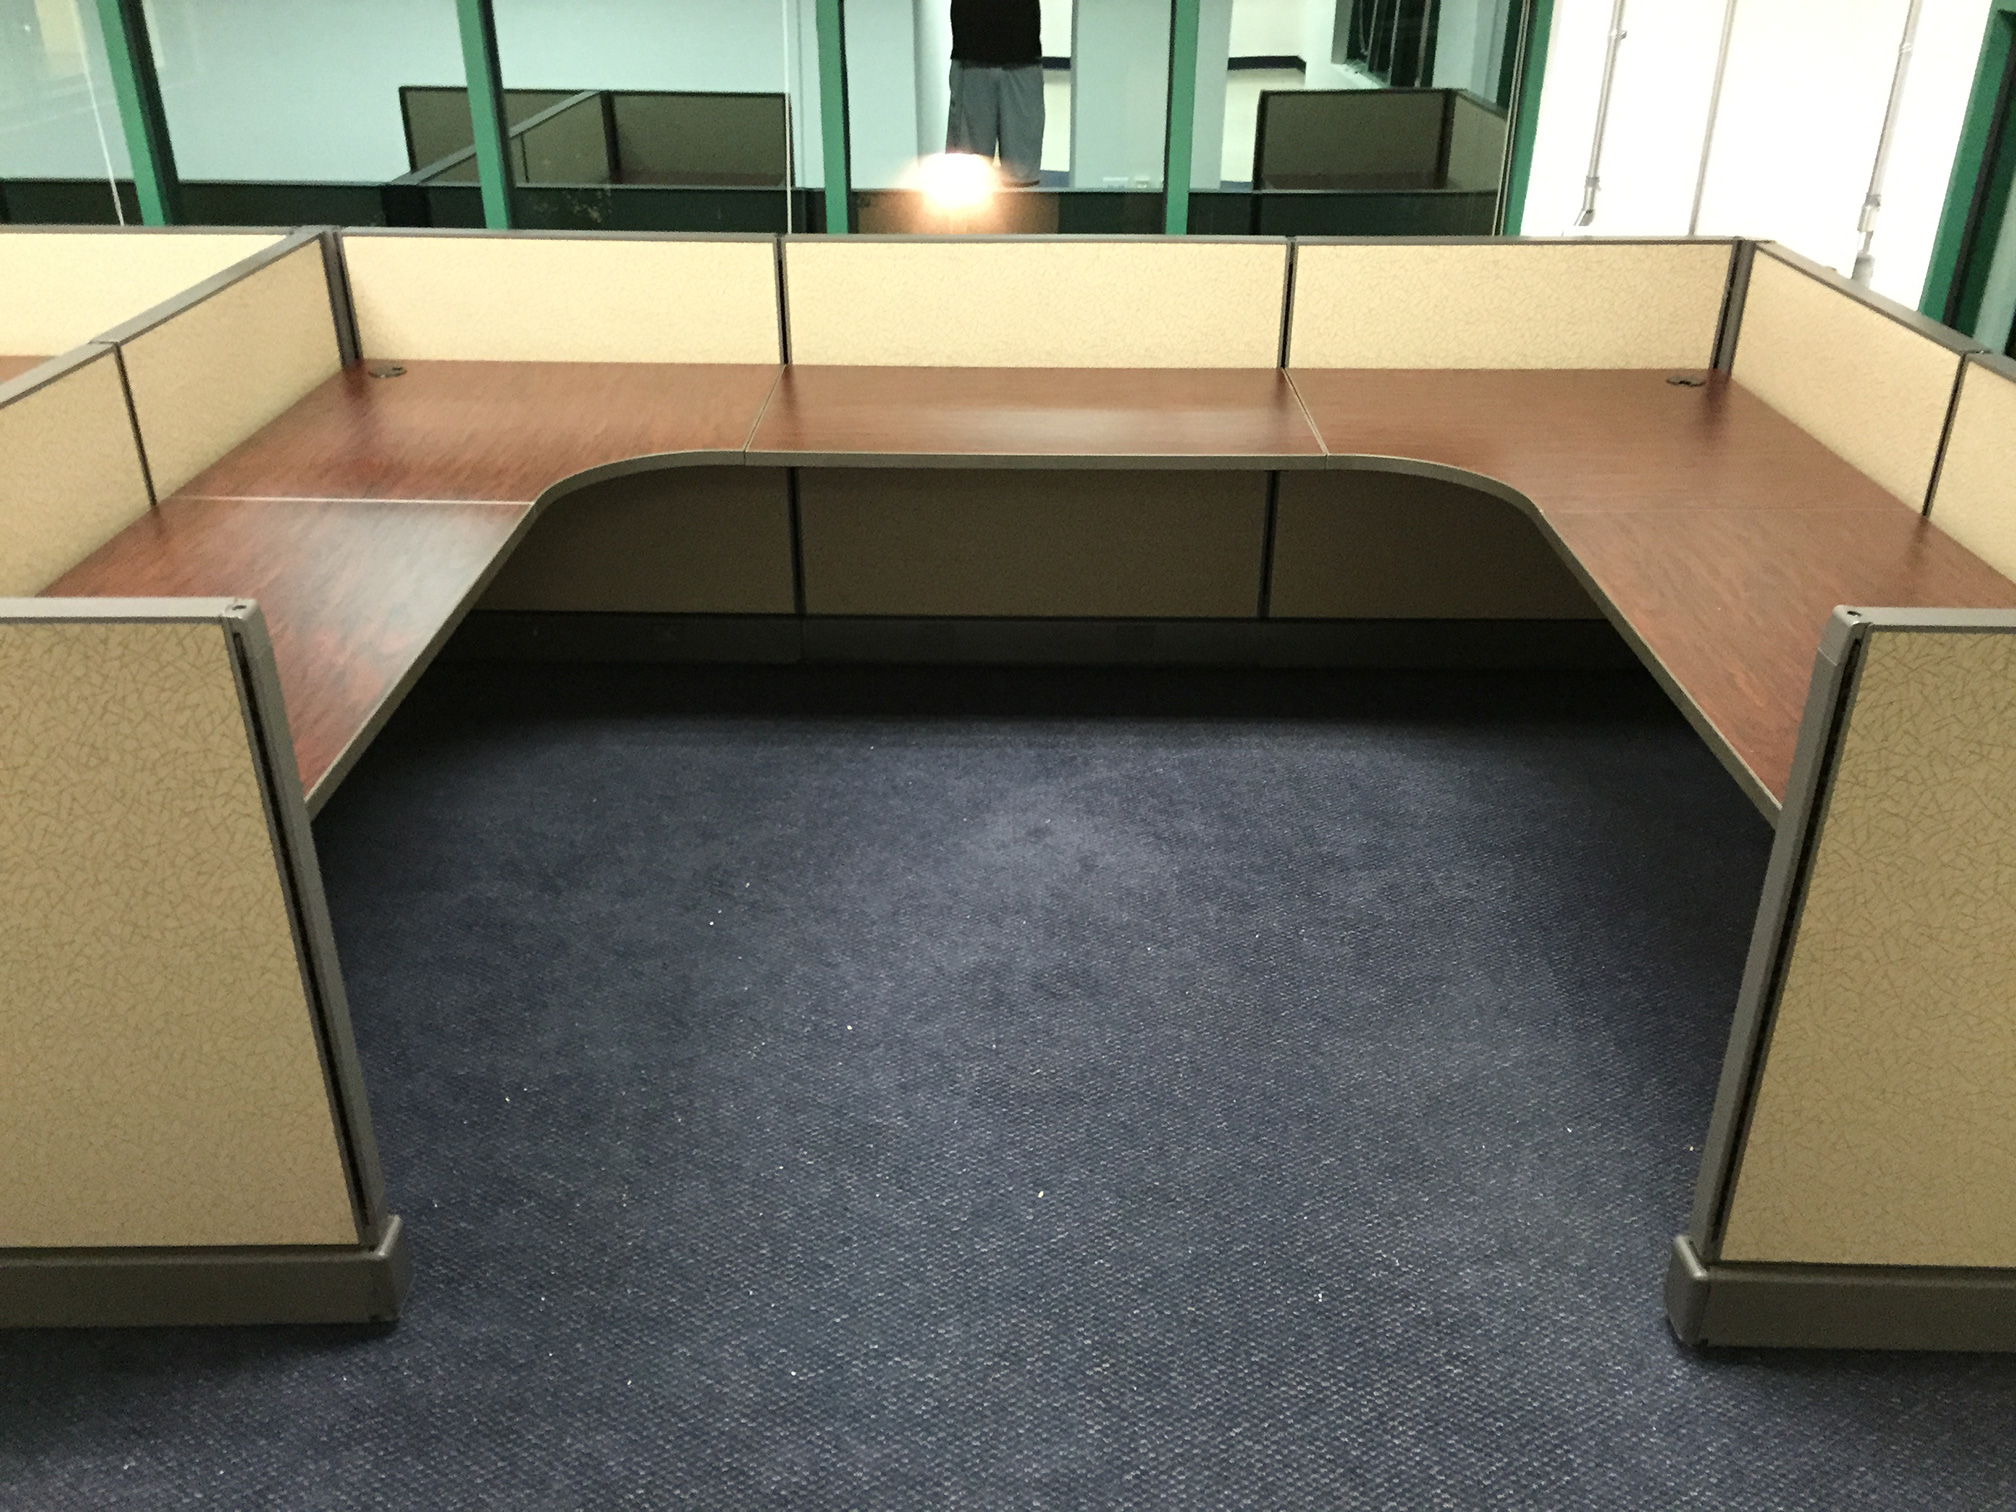 cubicle-walls-for-sale-manasota-office-supplies-llc.jpg